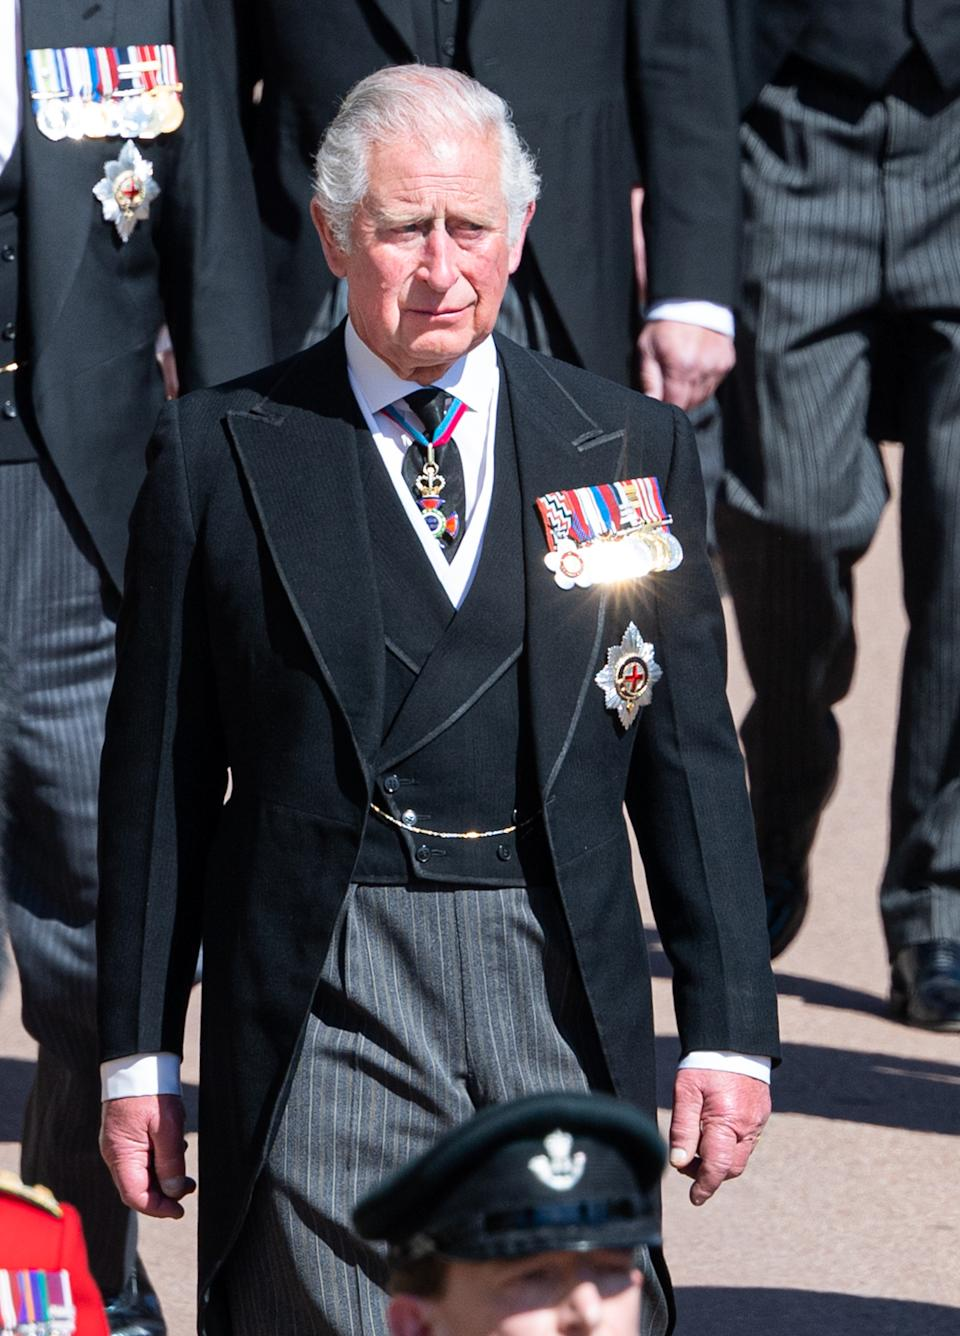 Prince Charles at Prince Philip's funeral